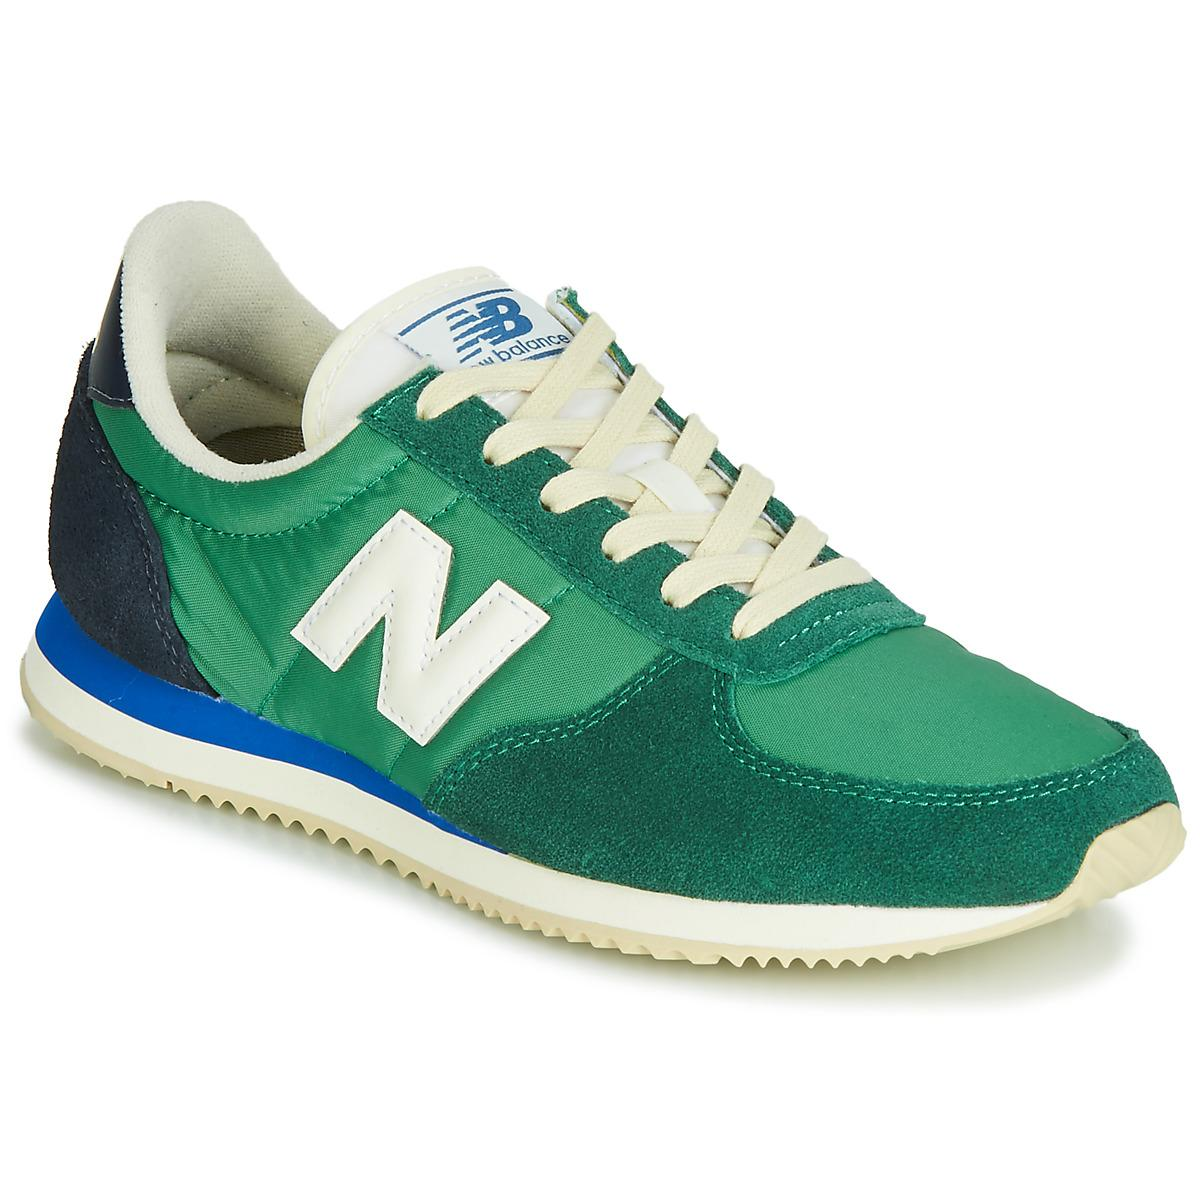 quality design 7cfc8 e7644 New Balance U220 Shoes (trainers) in Green - Lyst